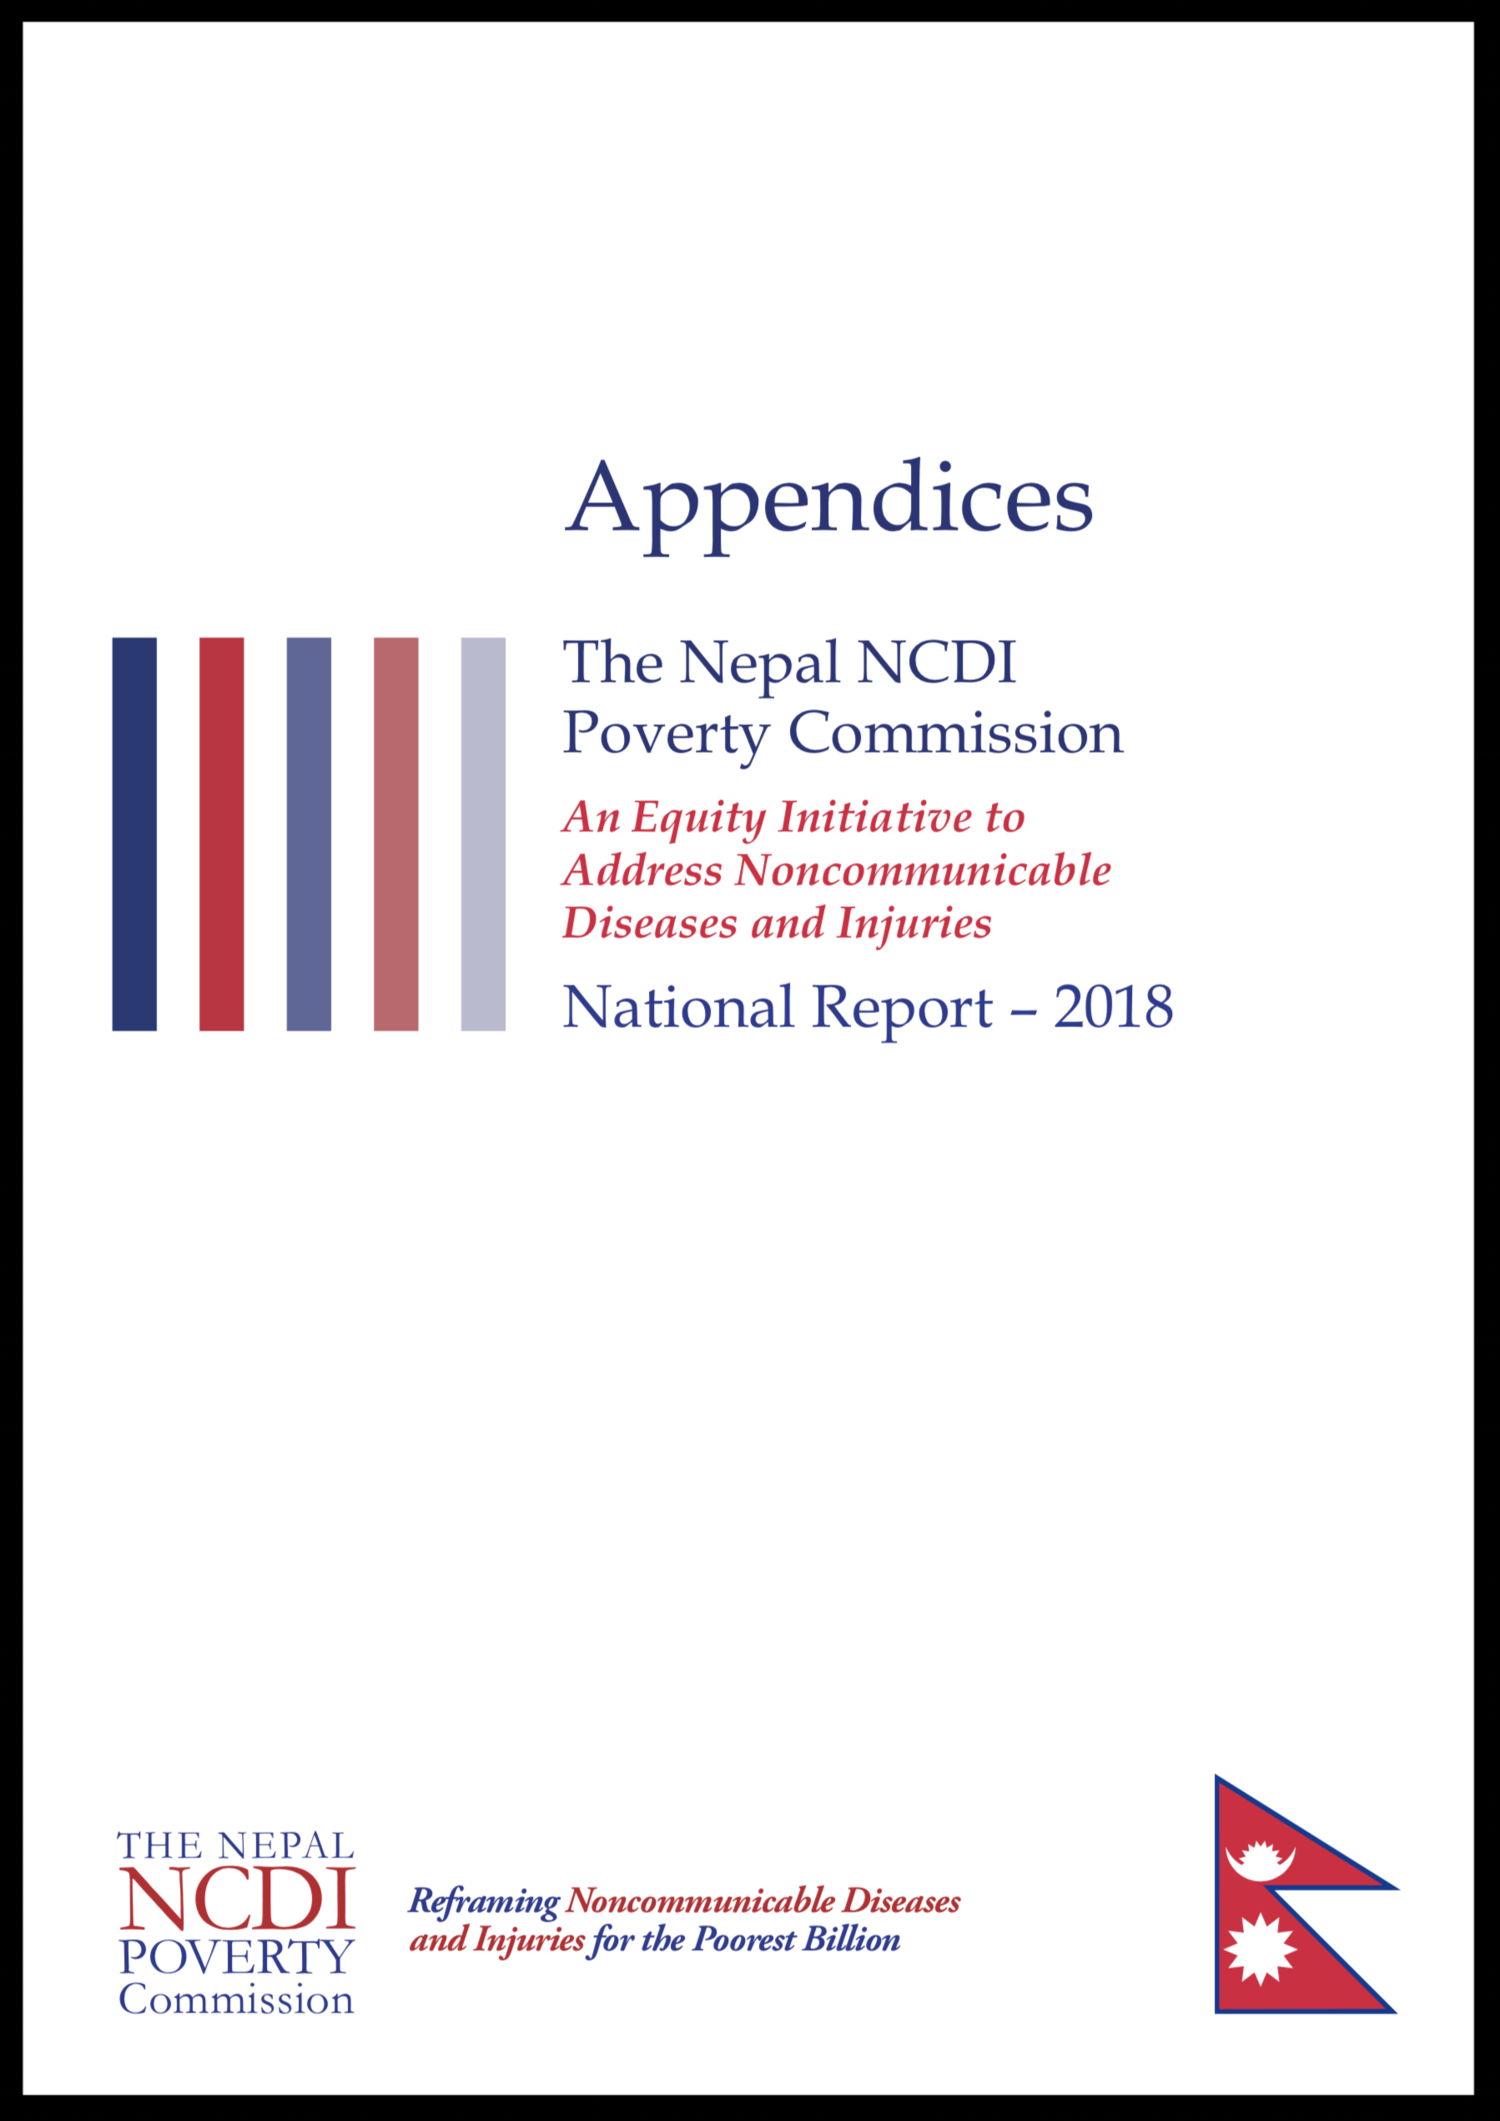 Nepal NCDI Poverty COmmission 2018 Report Appendices